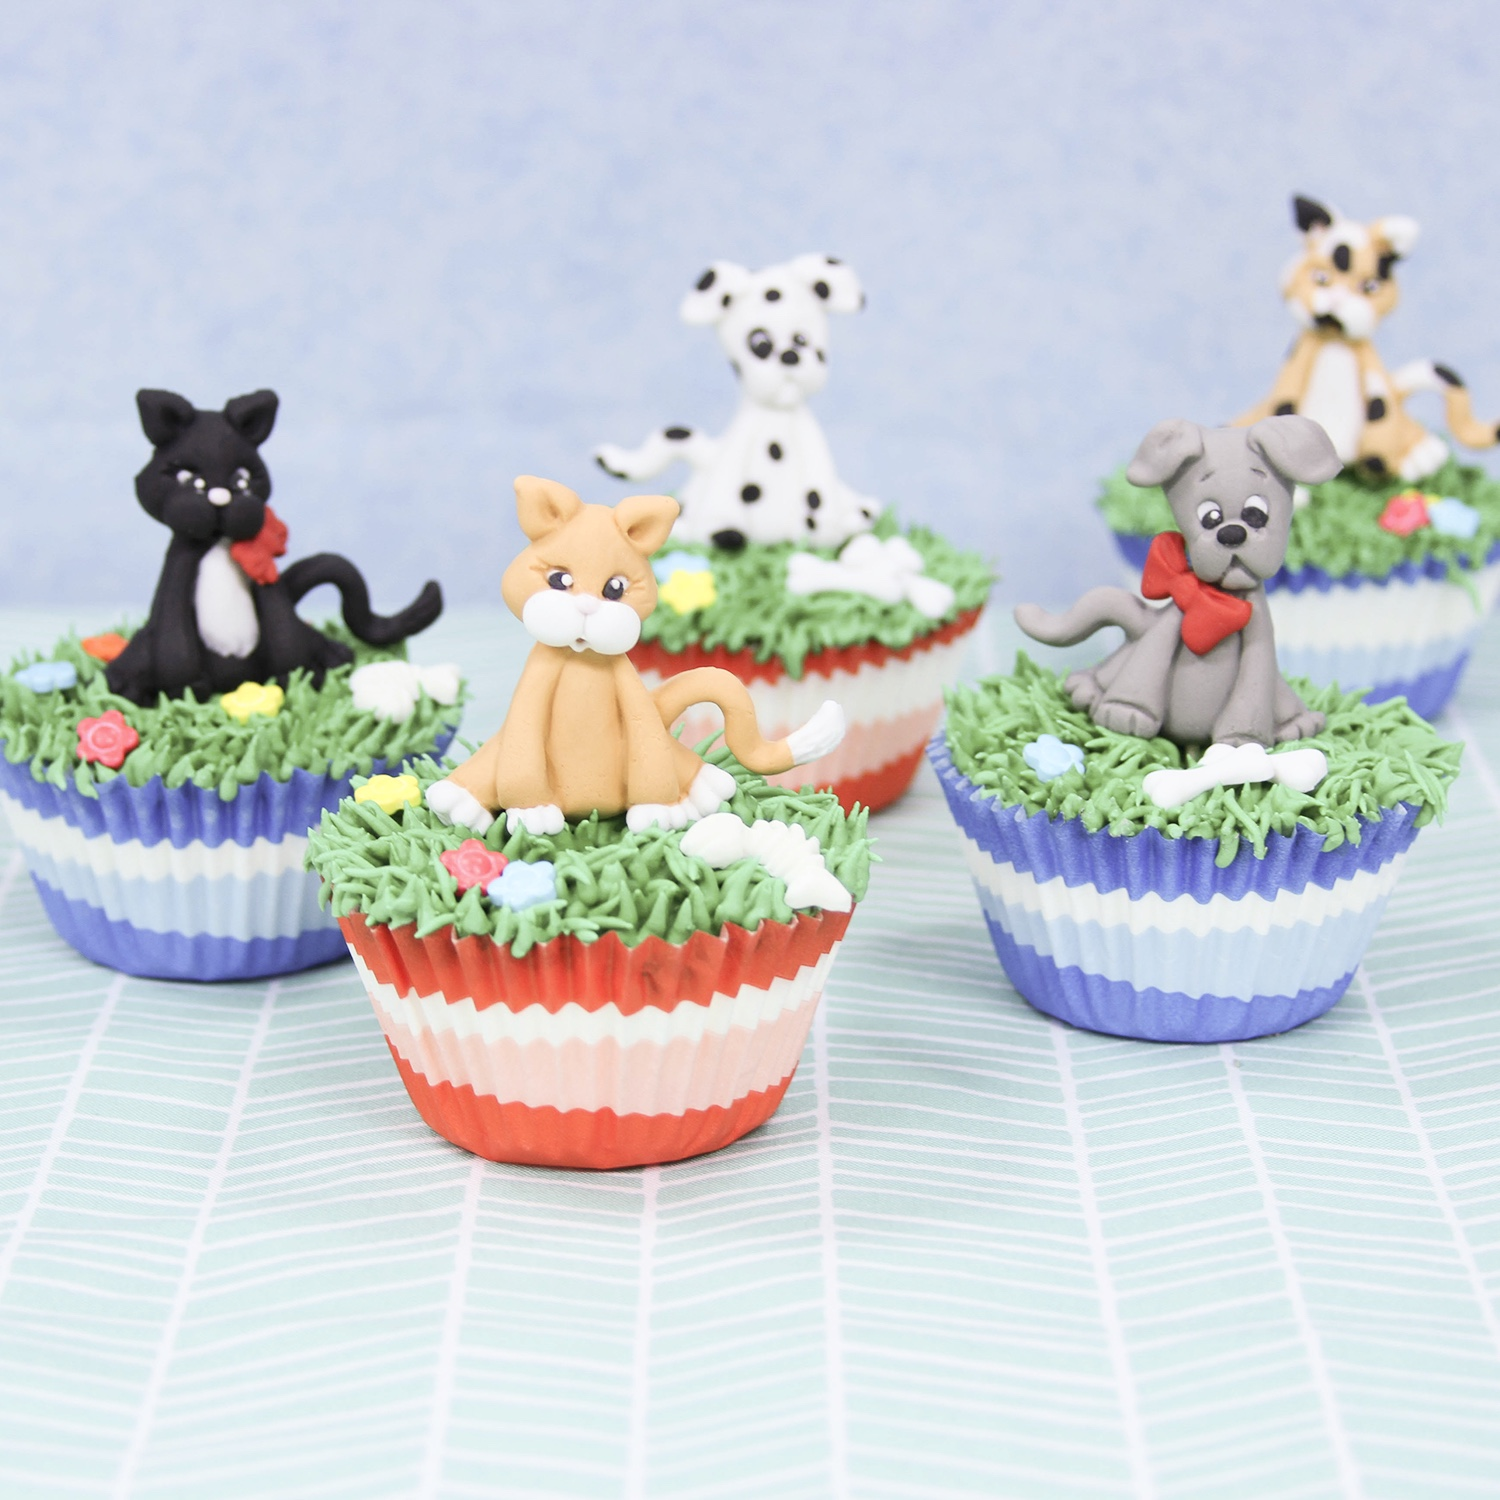 Dog & Cat Fondant Topper Cupcakes